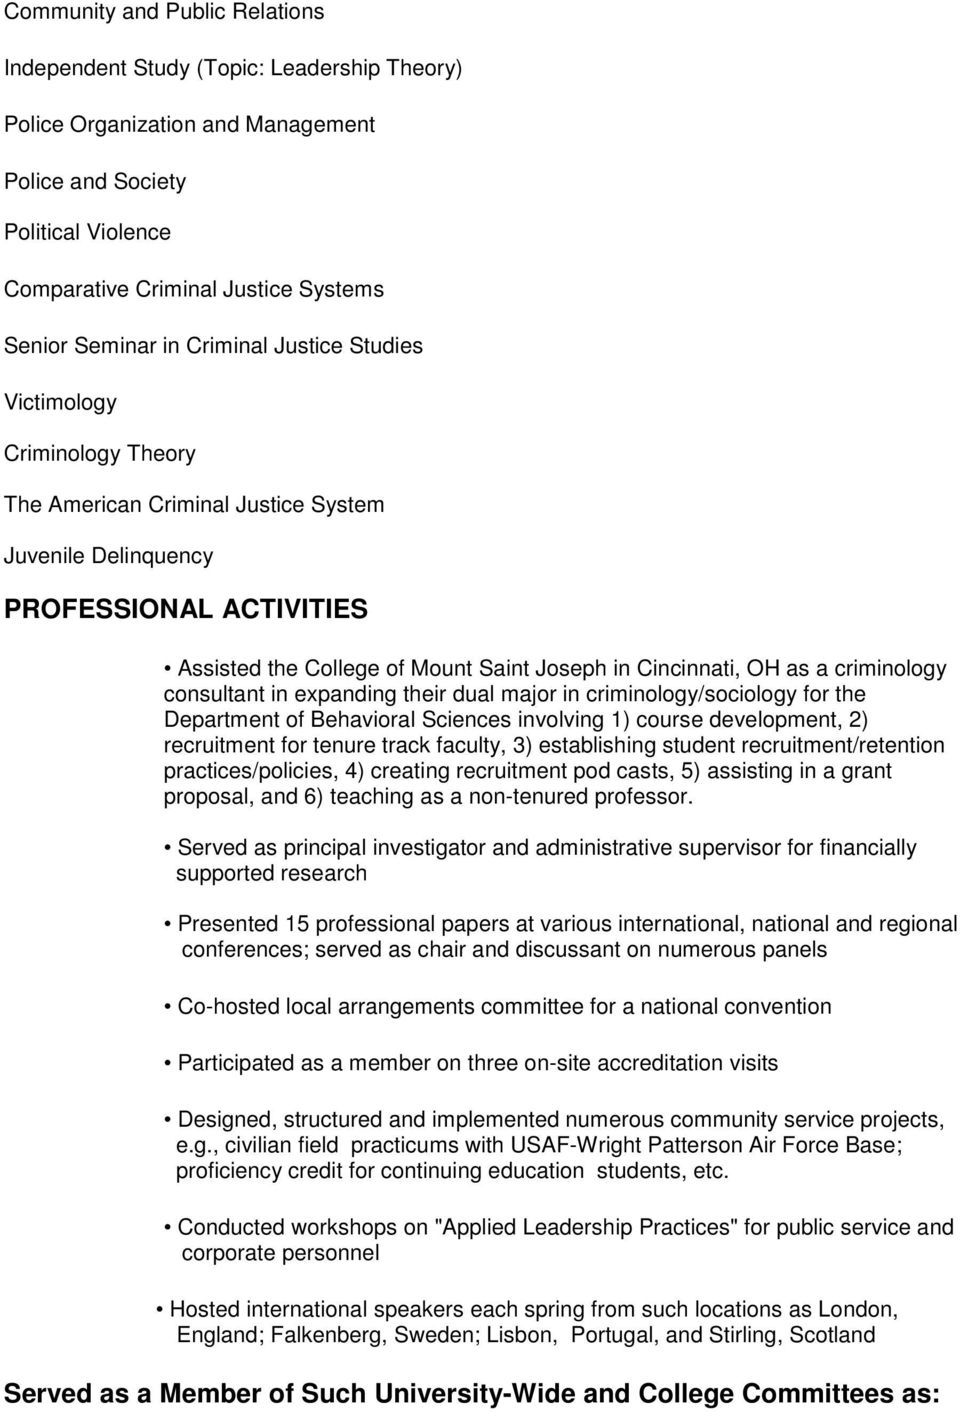 Cincinnati, OH as a criminology consultant in expanding their dual major in criminology/sociology for the Department of Behavioral Sciences involving 1) course development, 2) recruitment for tenure